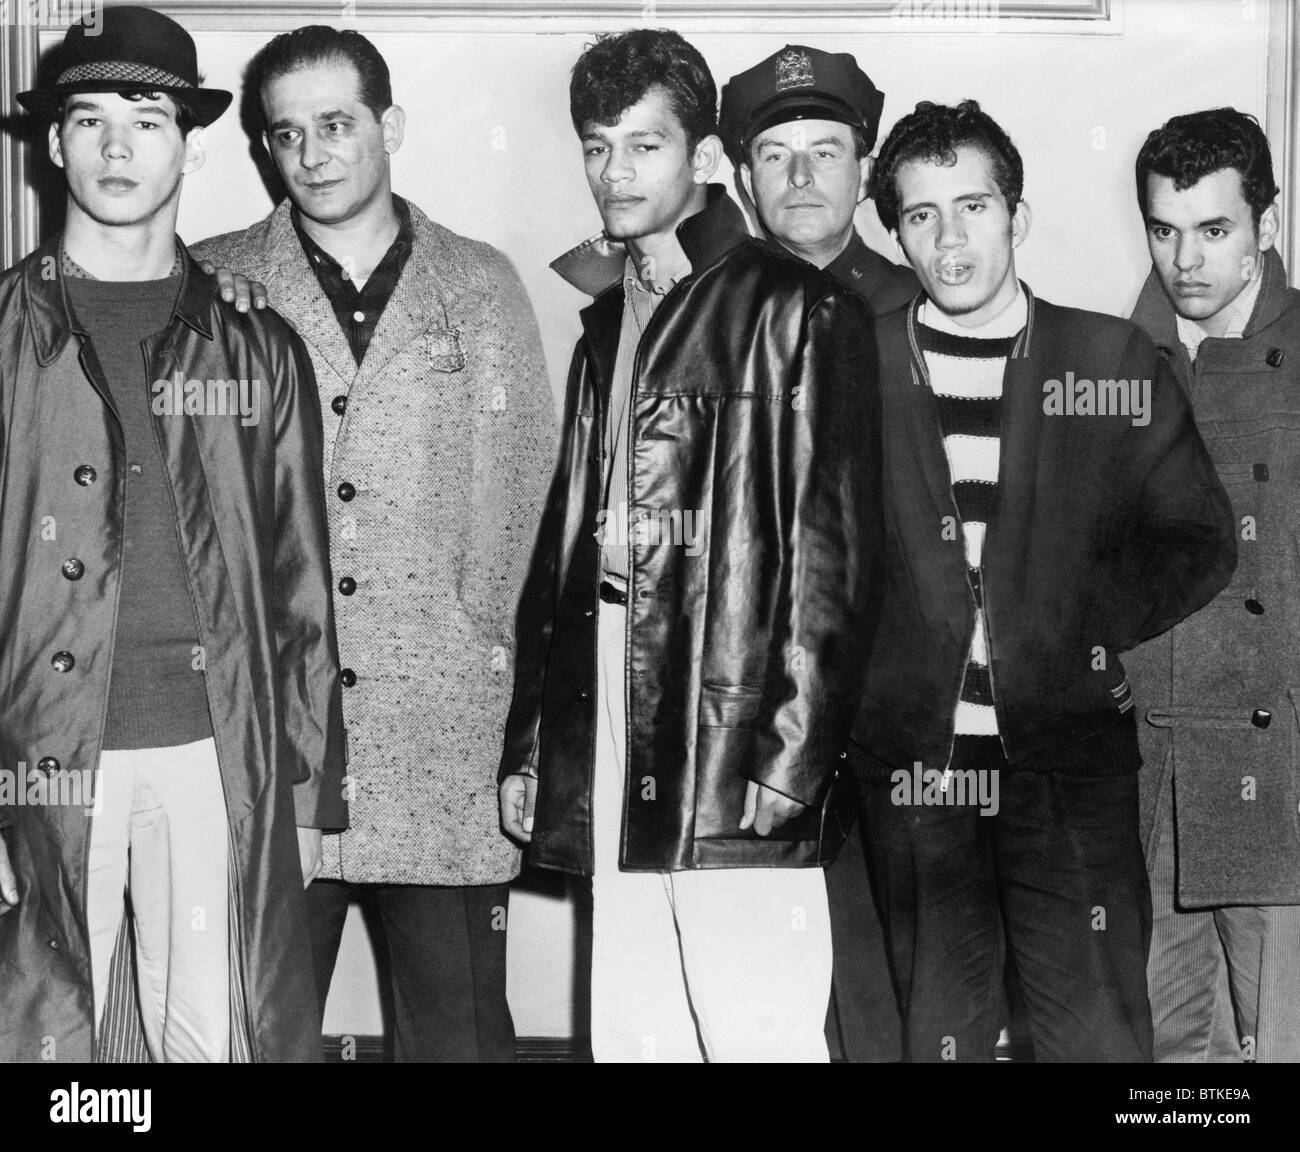 Teenage members of the Brooklyn Puerto Rican gang the Mau Maus, arrested in the fatal shootingof a rival gang member, - Stock Image